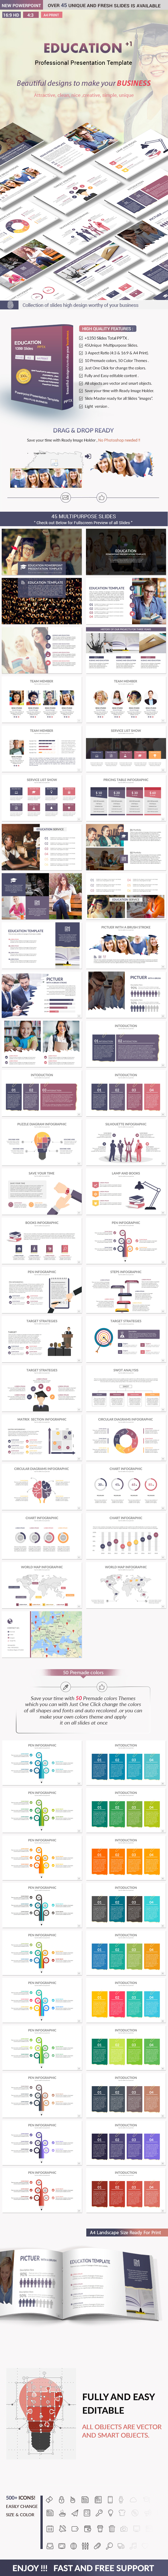 Education PowerPoint Presentation Template - Business PowerPoint Templates